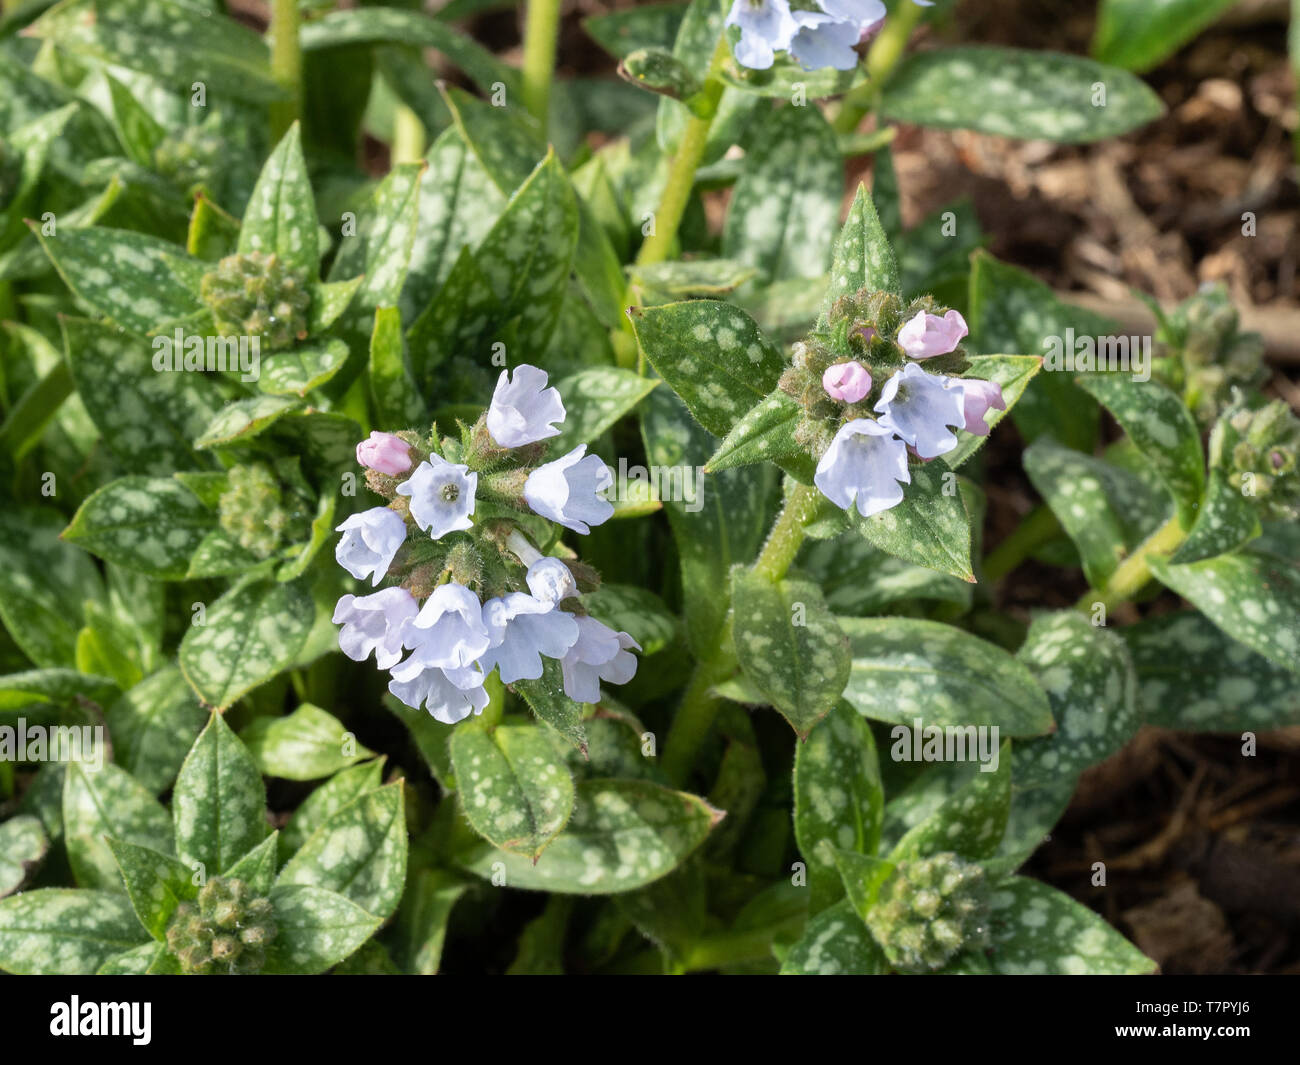 A close up of the flowers on Pulmonaria Opal - Stock Image